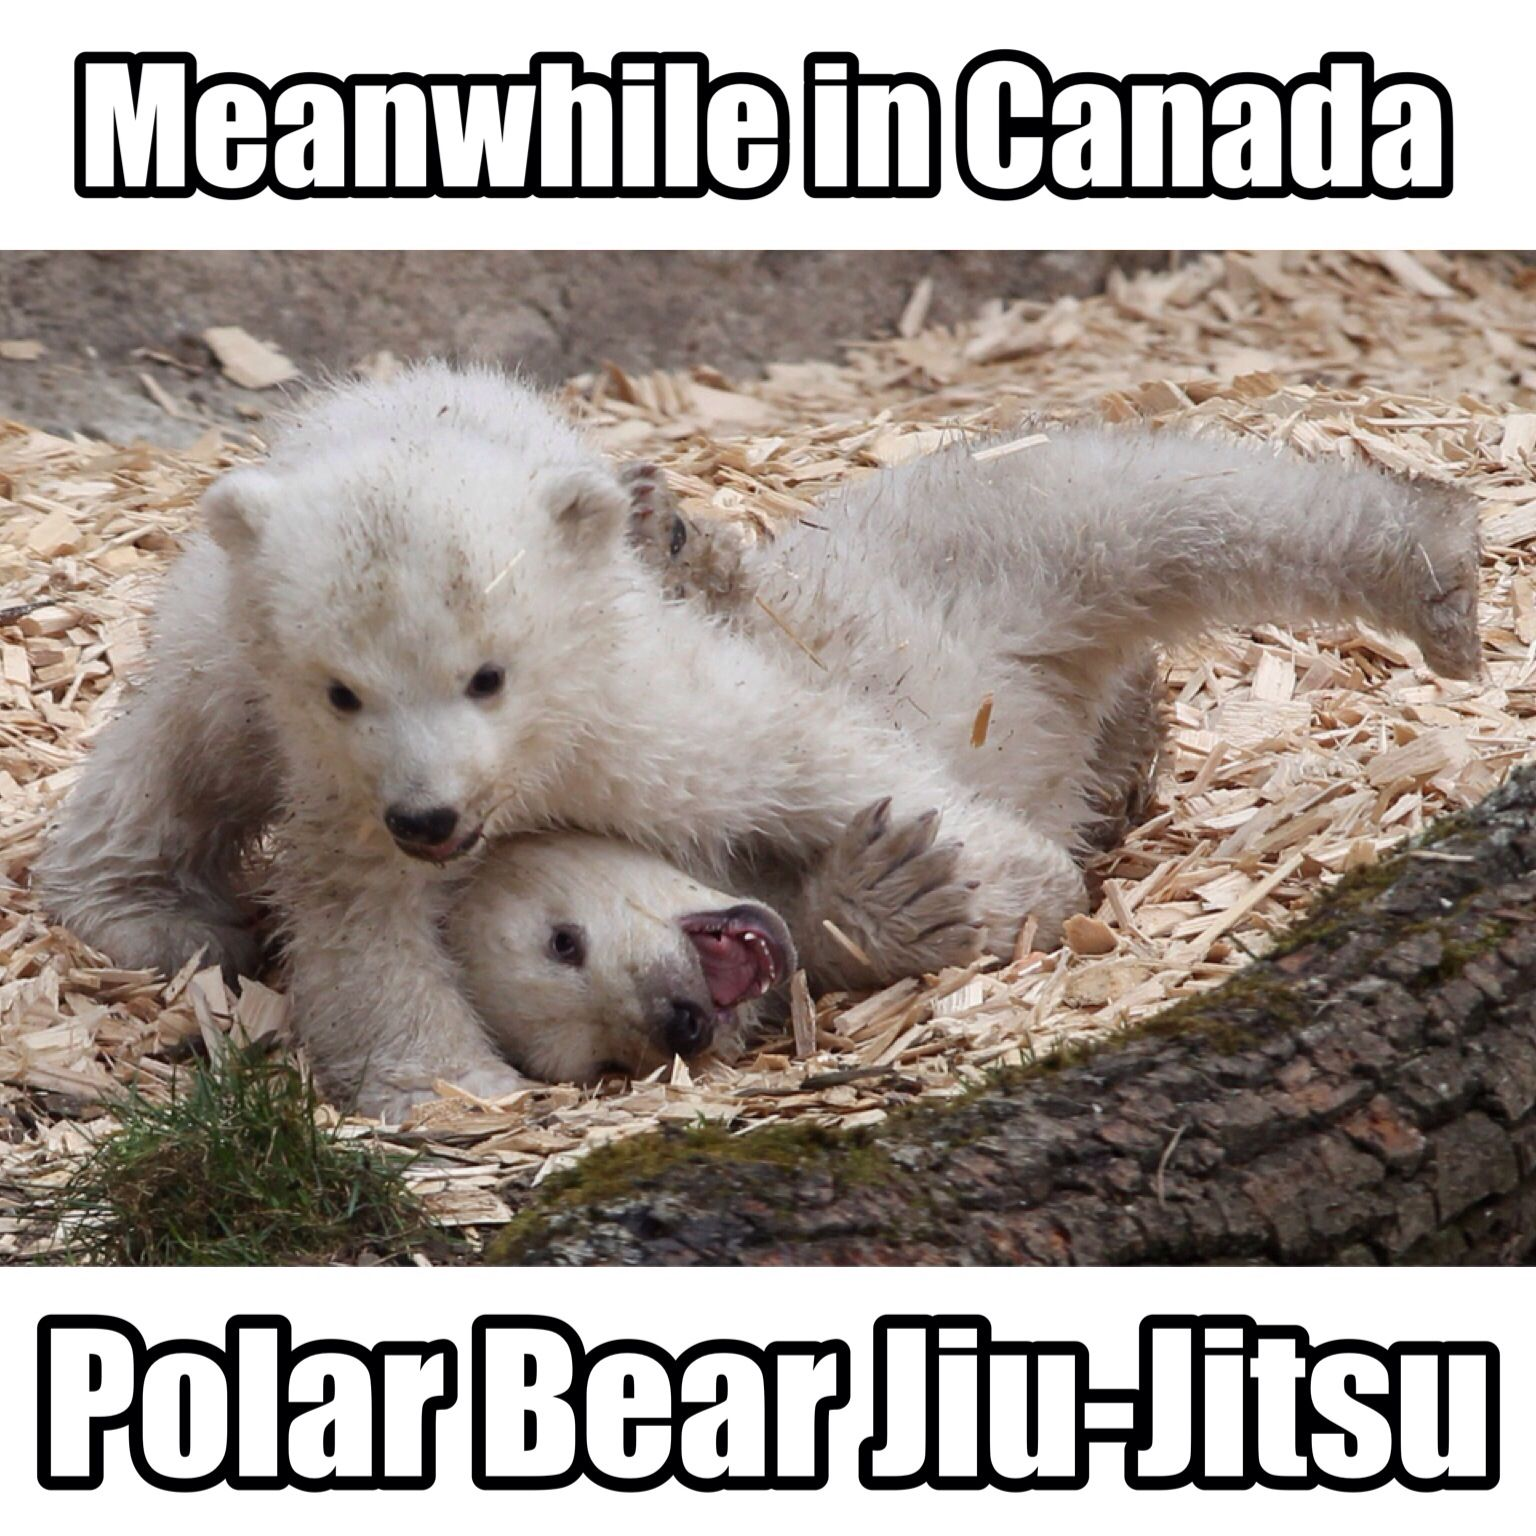 6e68e4dfcb38565155ef8d3e3a2e8ec1 polar bear jiu jitsu! (meme made by yours truly) so adorable